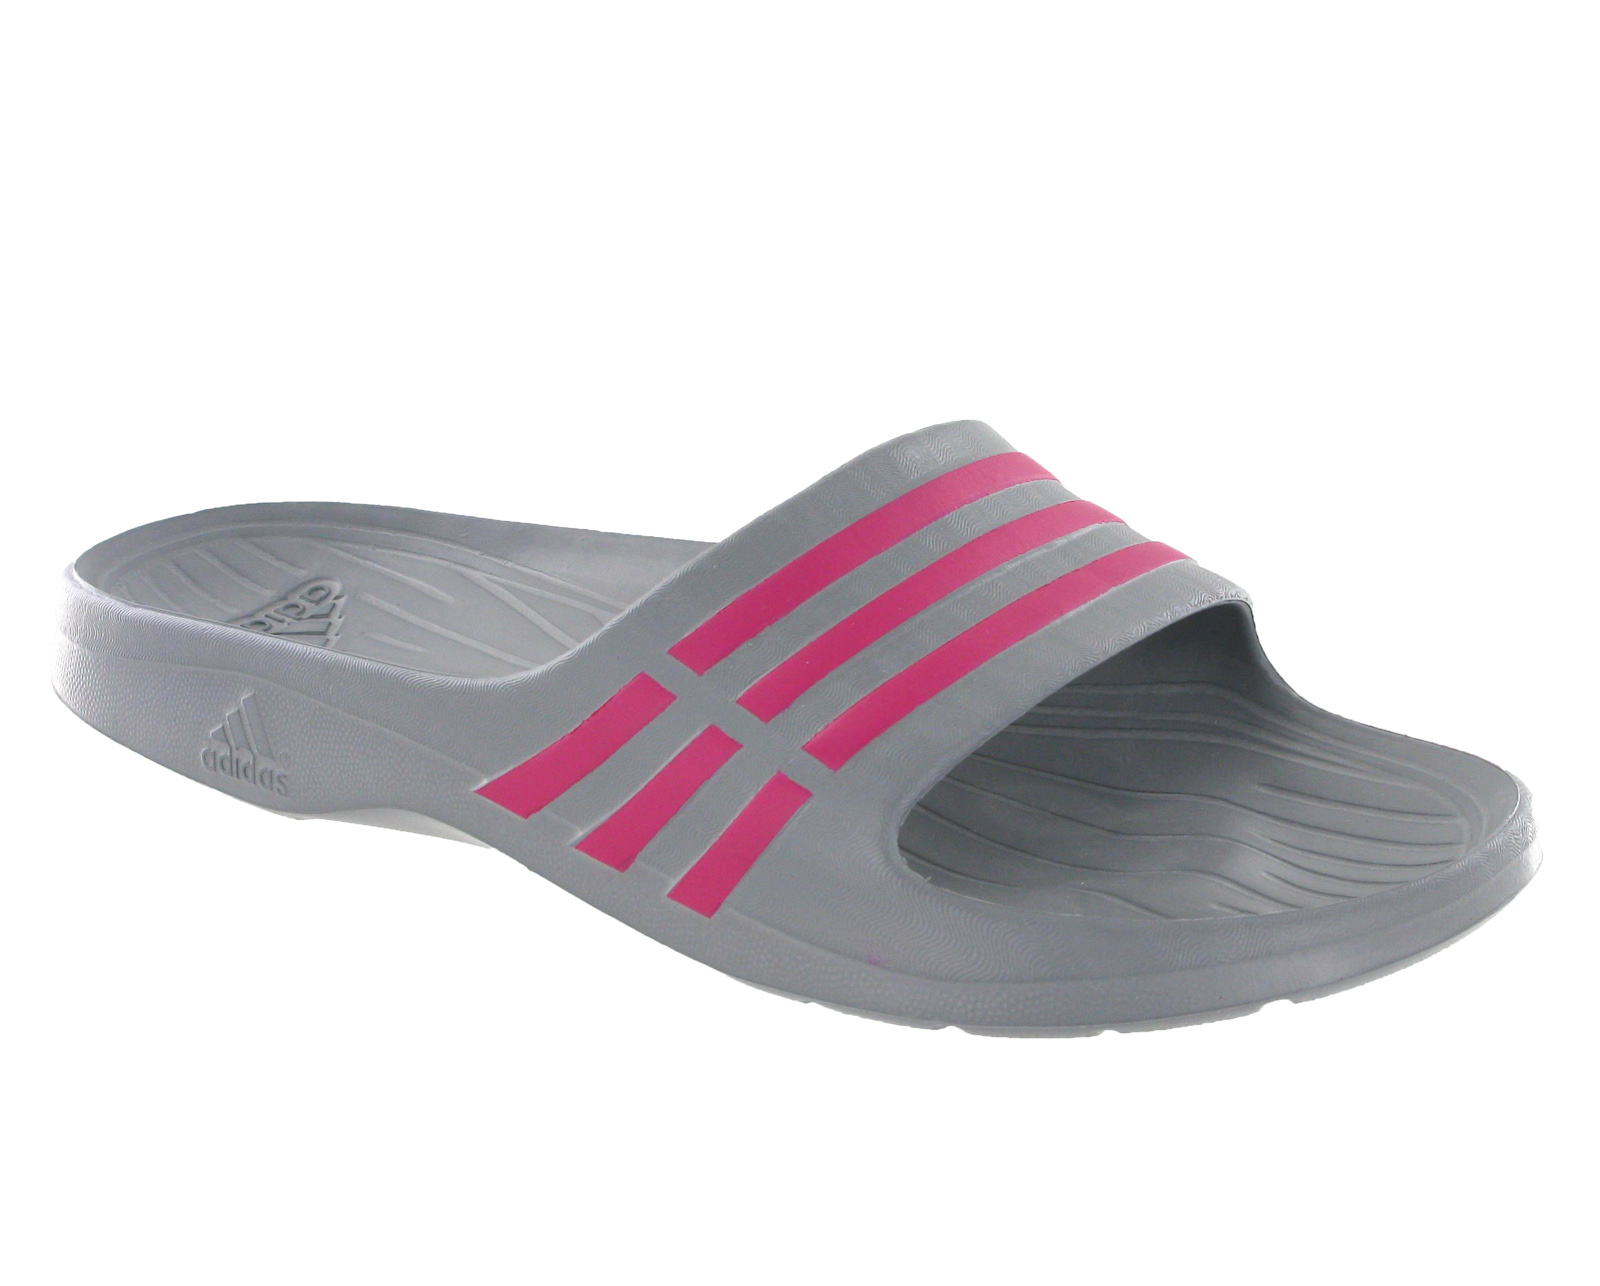 Simple If You Avoid Slides In The Summer Because They Make Your Feet Sweat, Listen TF Up These Babies Have Breathable Leather Lining That Actually Doesnt Overheat Your Feet! The Contoured Arch Support